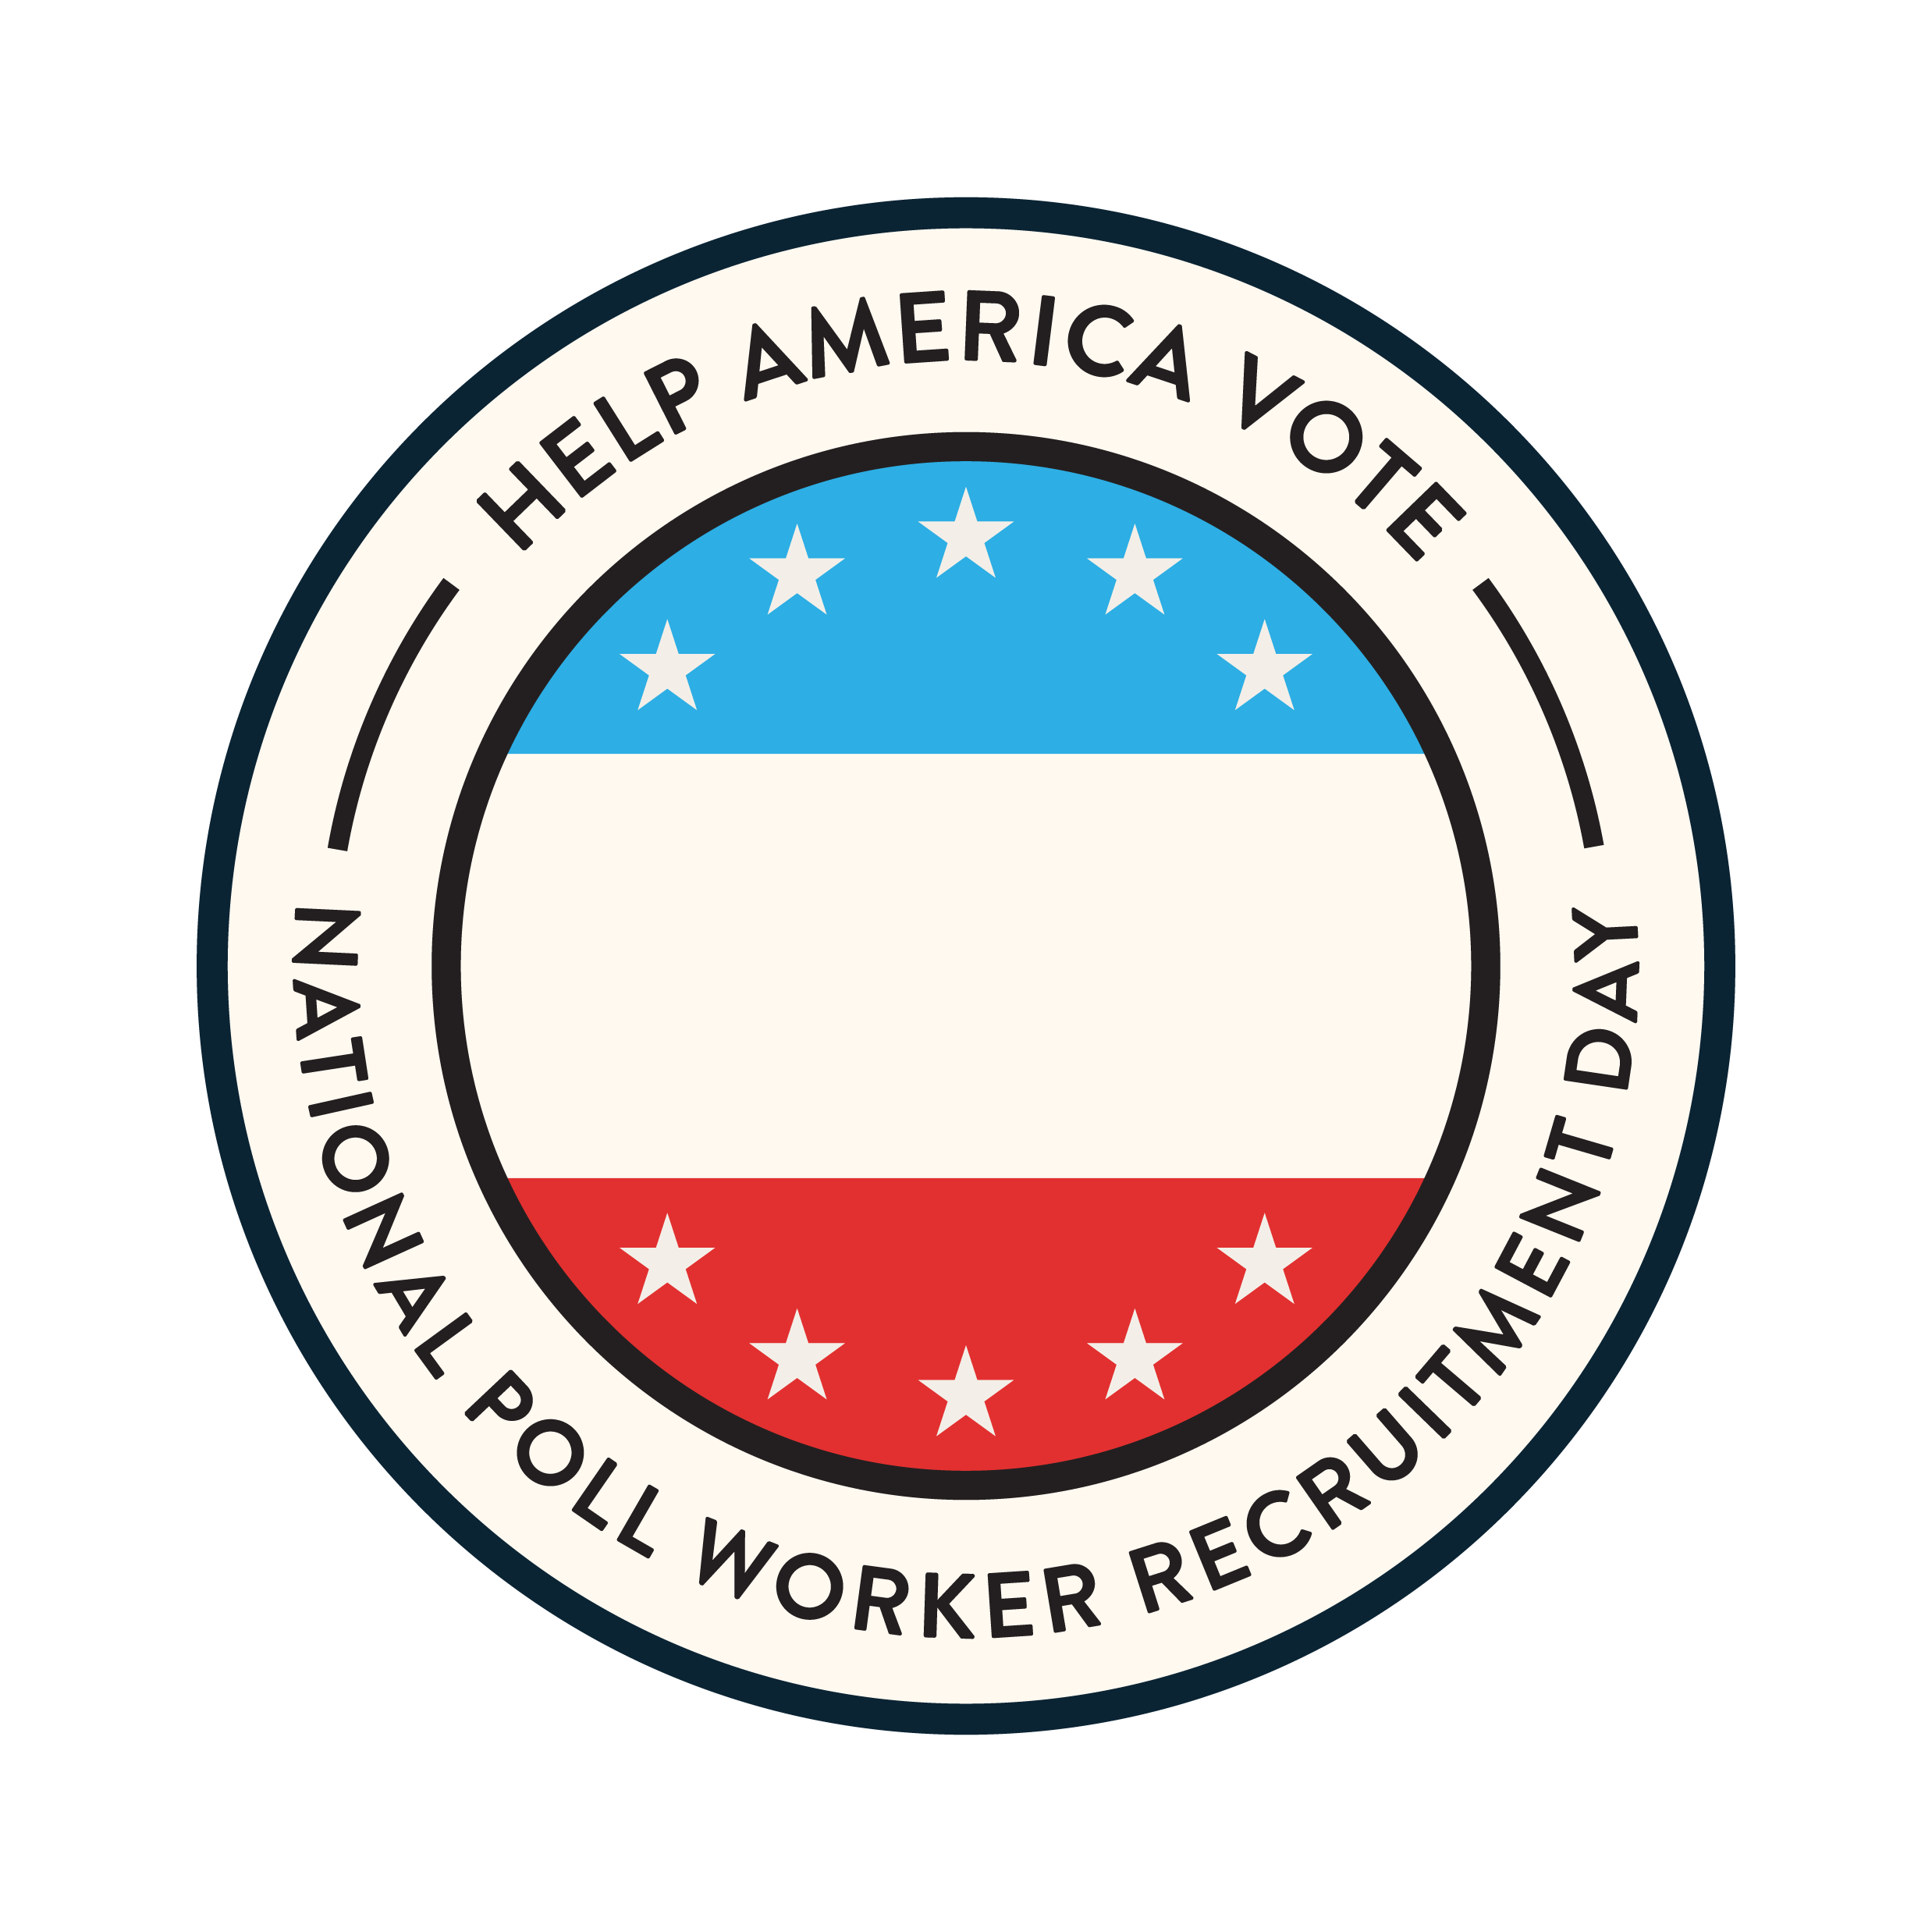 Help America Vote: National Poll Worker Recruitment Day